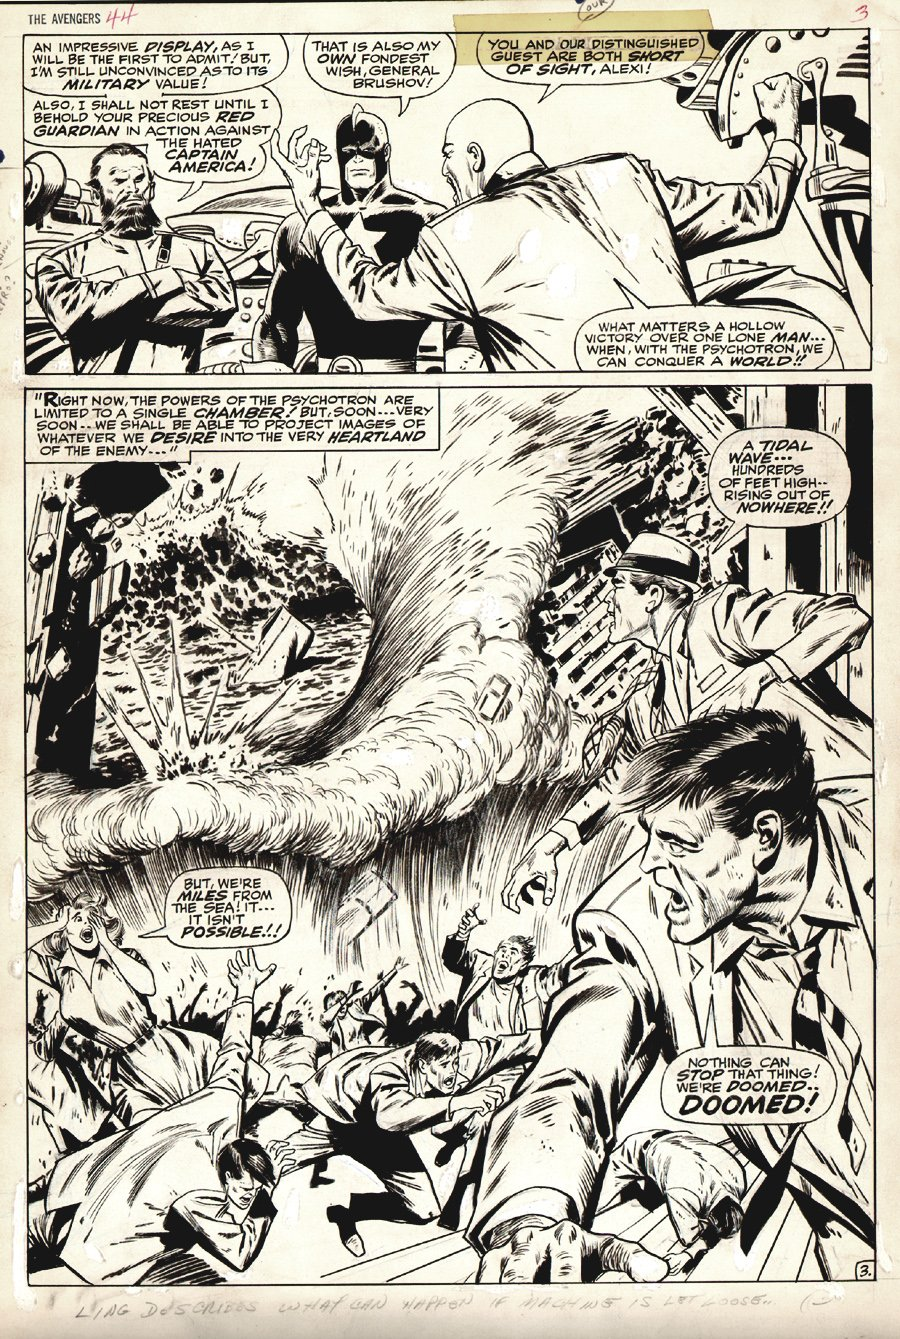 Avengers #44 p 3 SPLASH (Large Art) 1967